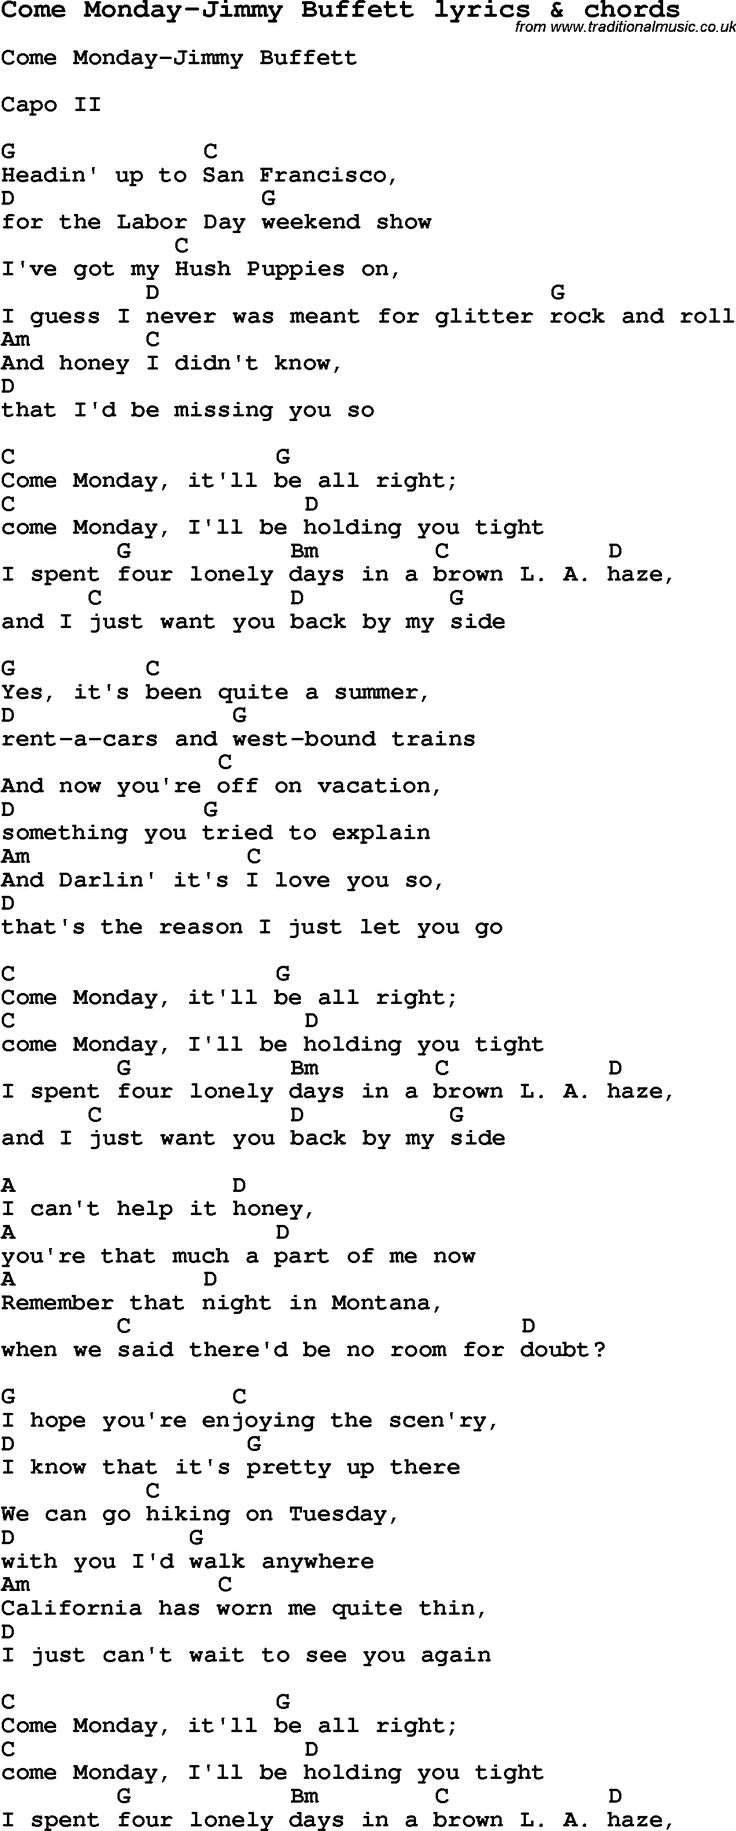 Best 25 jimmy buffett come monday ideas on pinterest jimmy love song lyrics for come monday jimmy buffett with chords for ukulele guitar hexwebz Choice Image